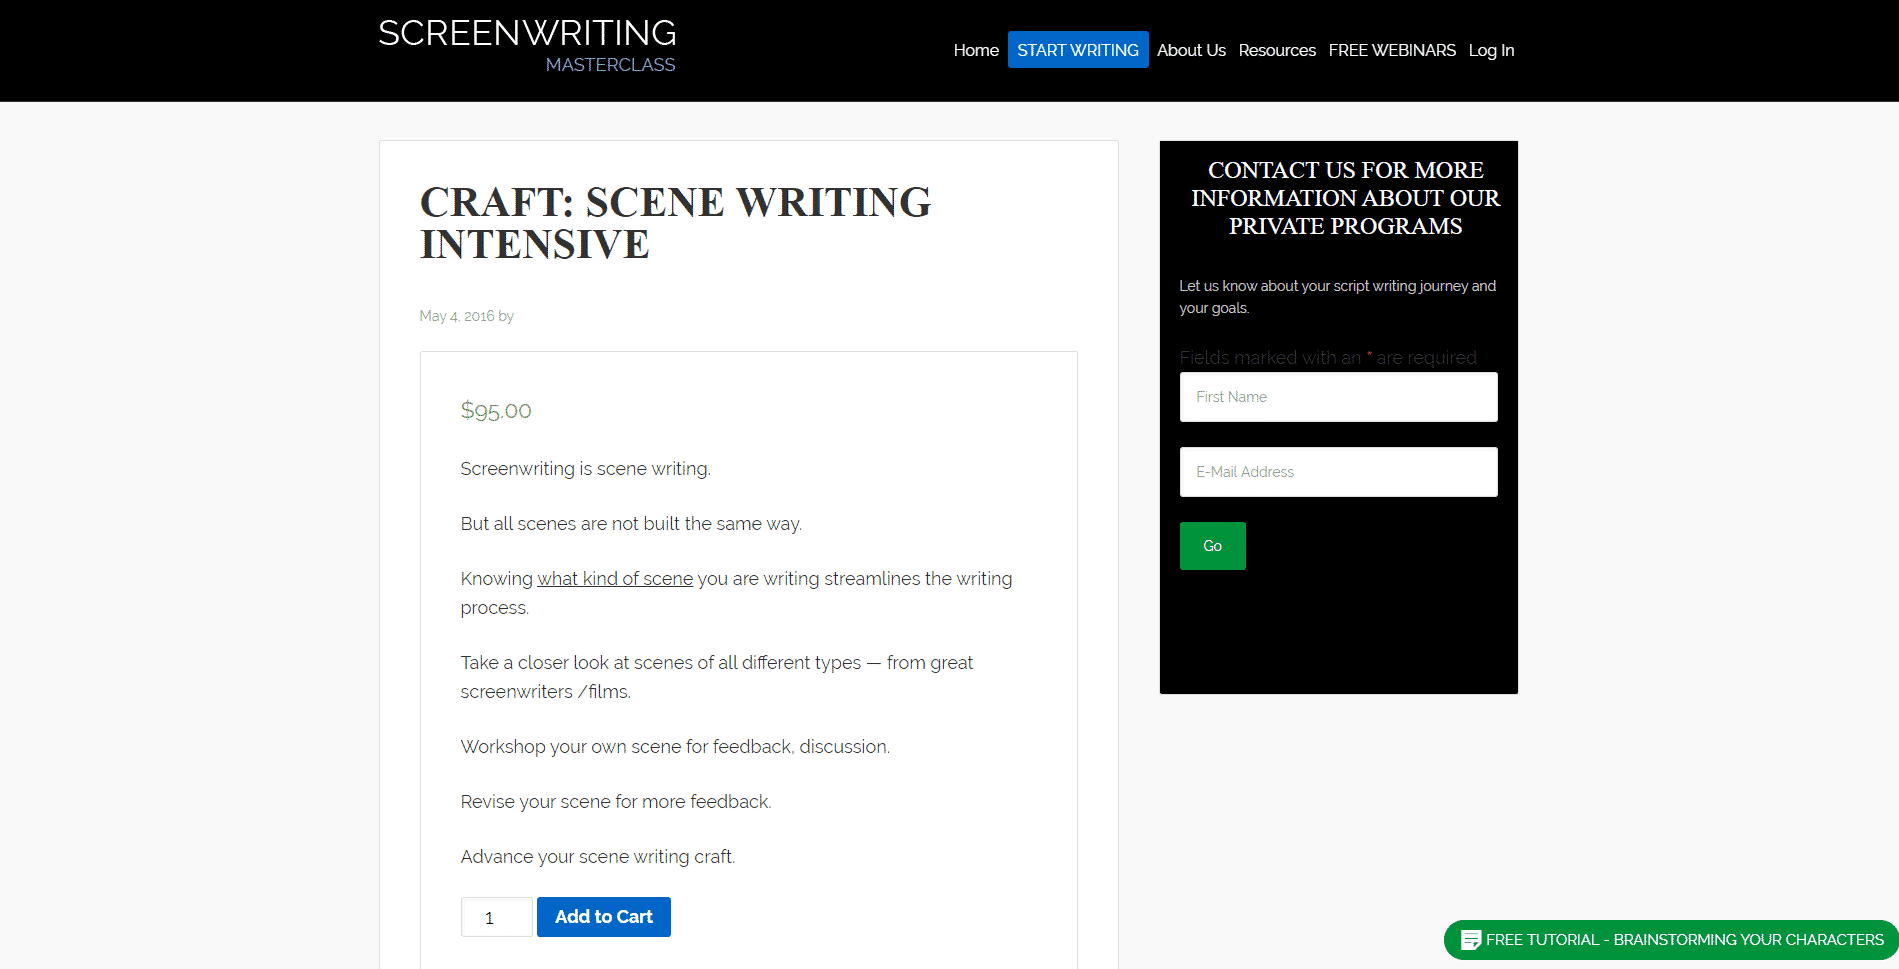 Screenwriting Masterclass Learn Screenwriting Lessons Online